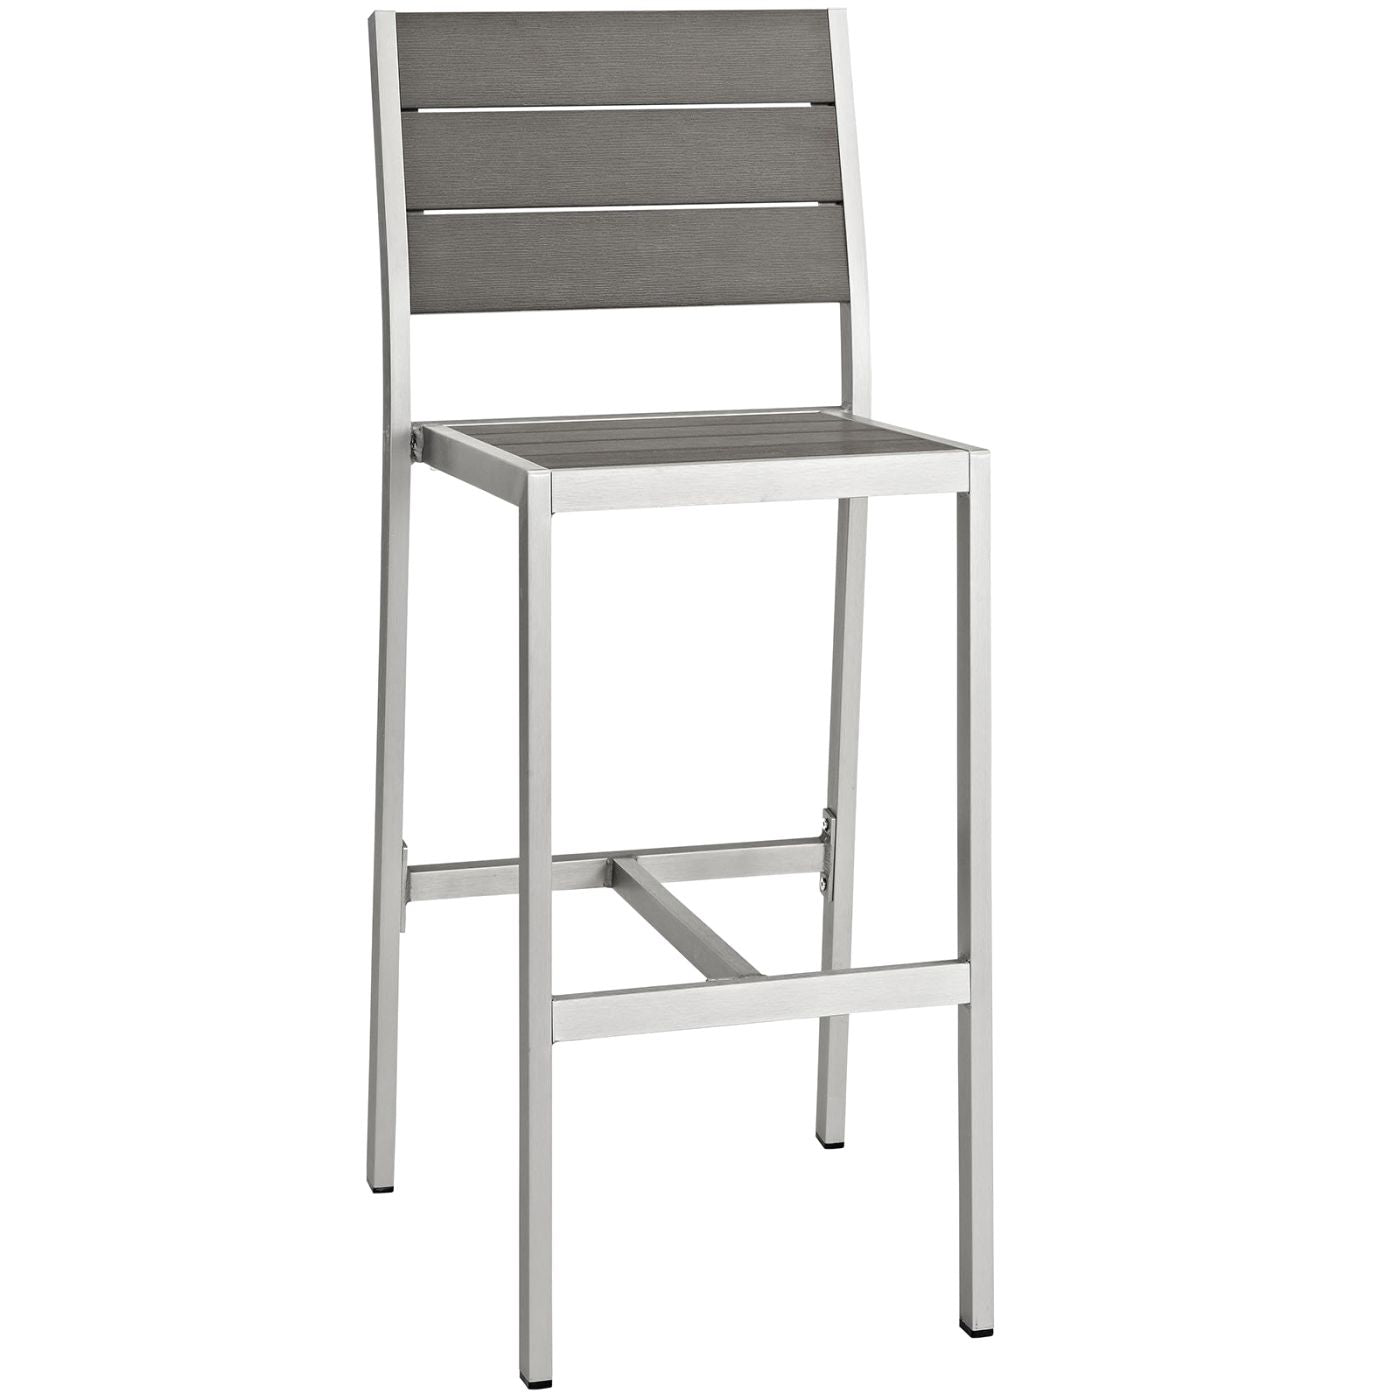 Outdoor Bar Stools For Sale